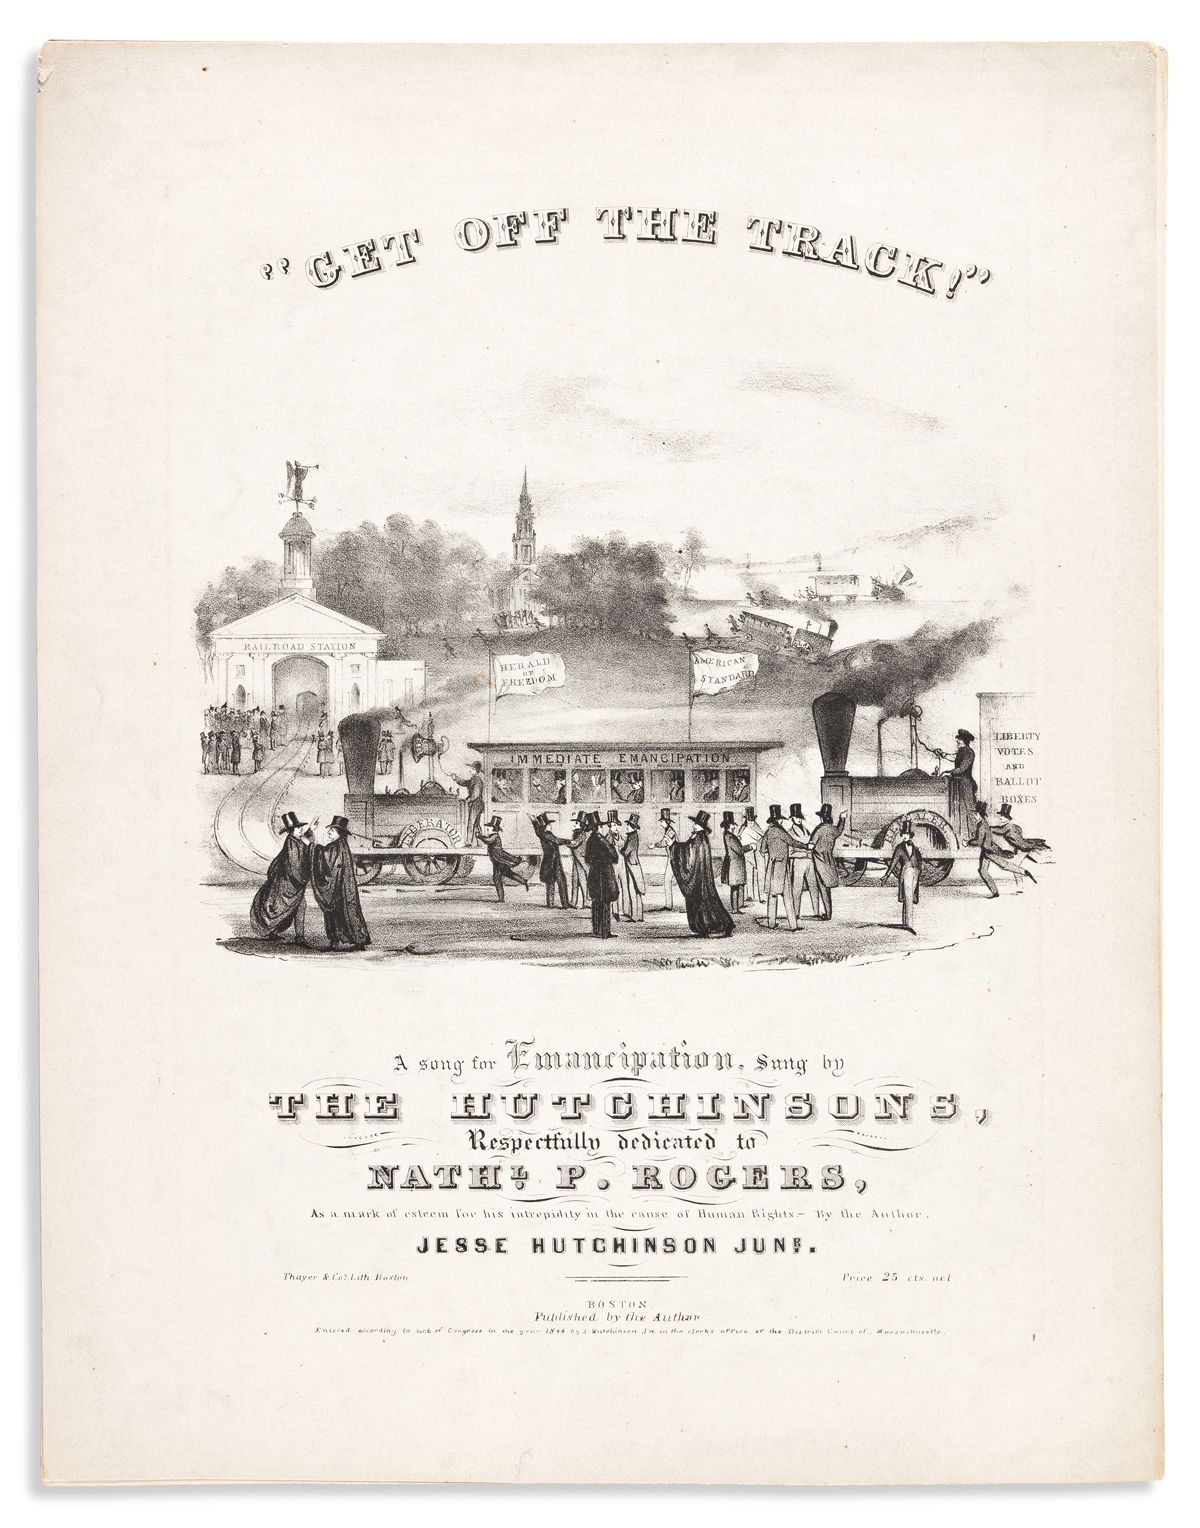 (SLAVERY AND ABOLITION.) Jesse Hutchinson Jr. Get Off the Track! A Song for Emancipation, Sung by the Hutchinsons.